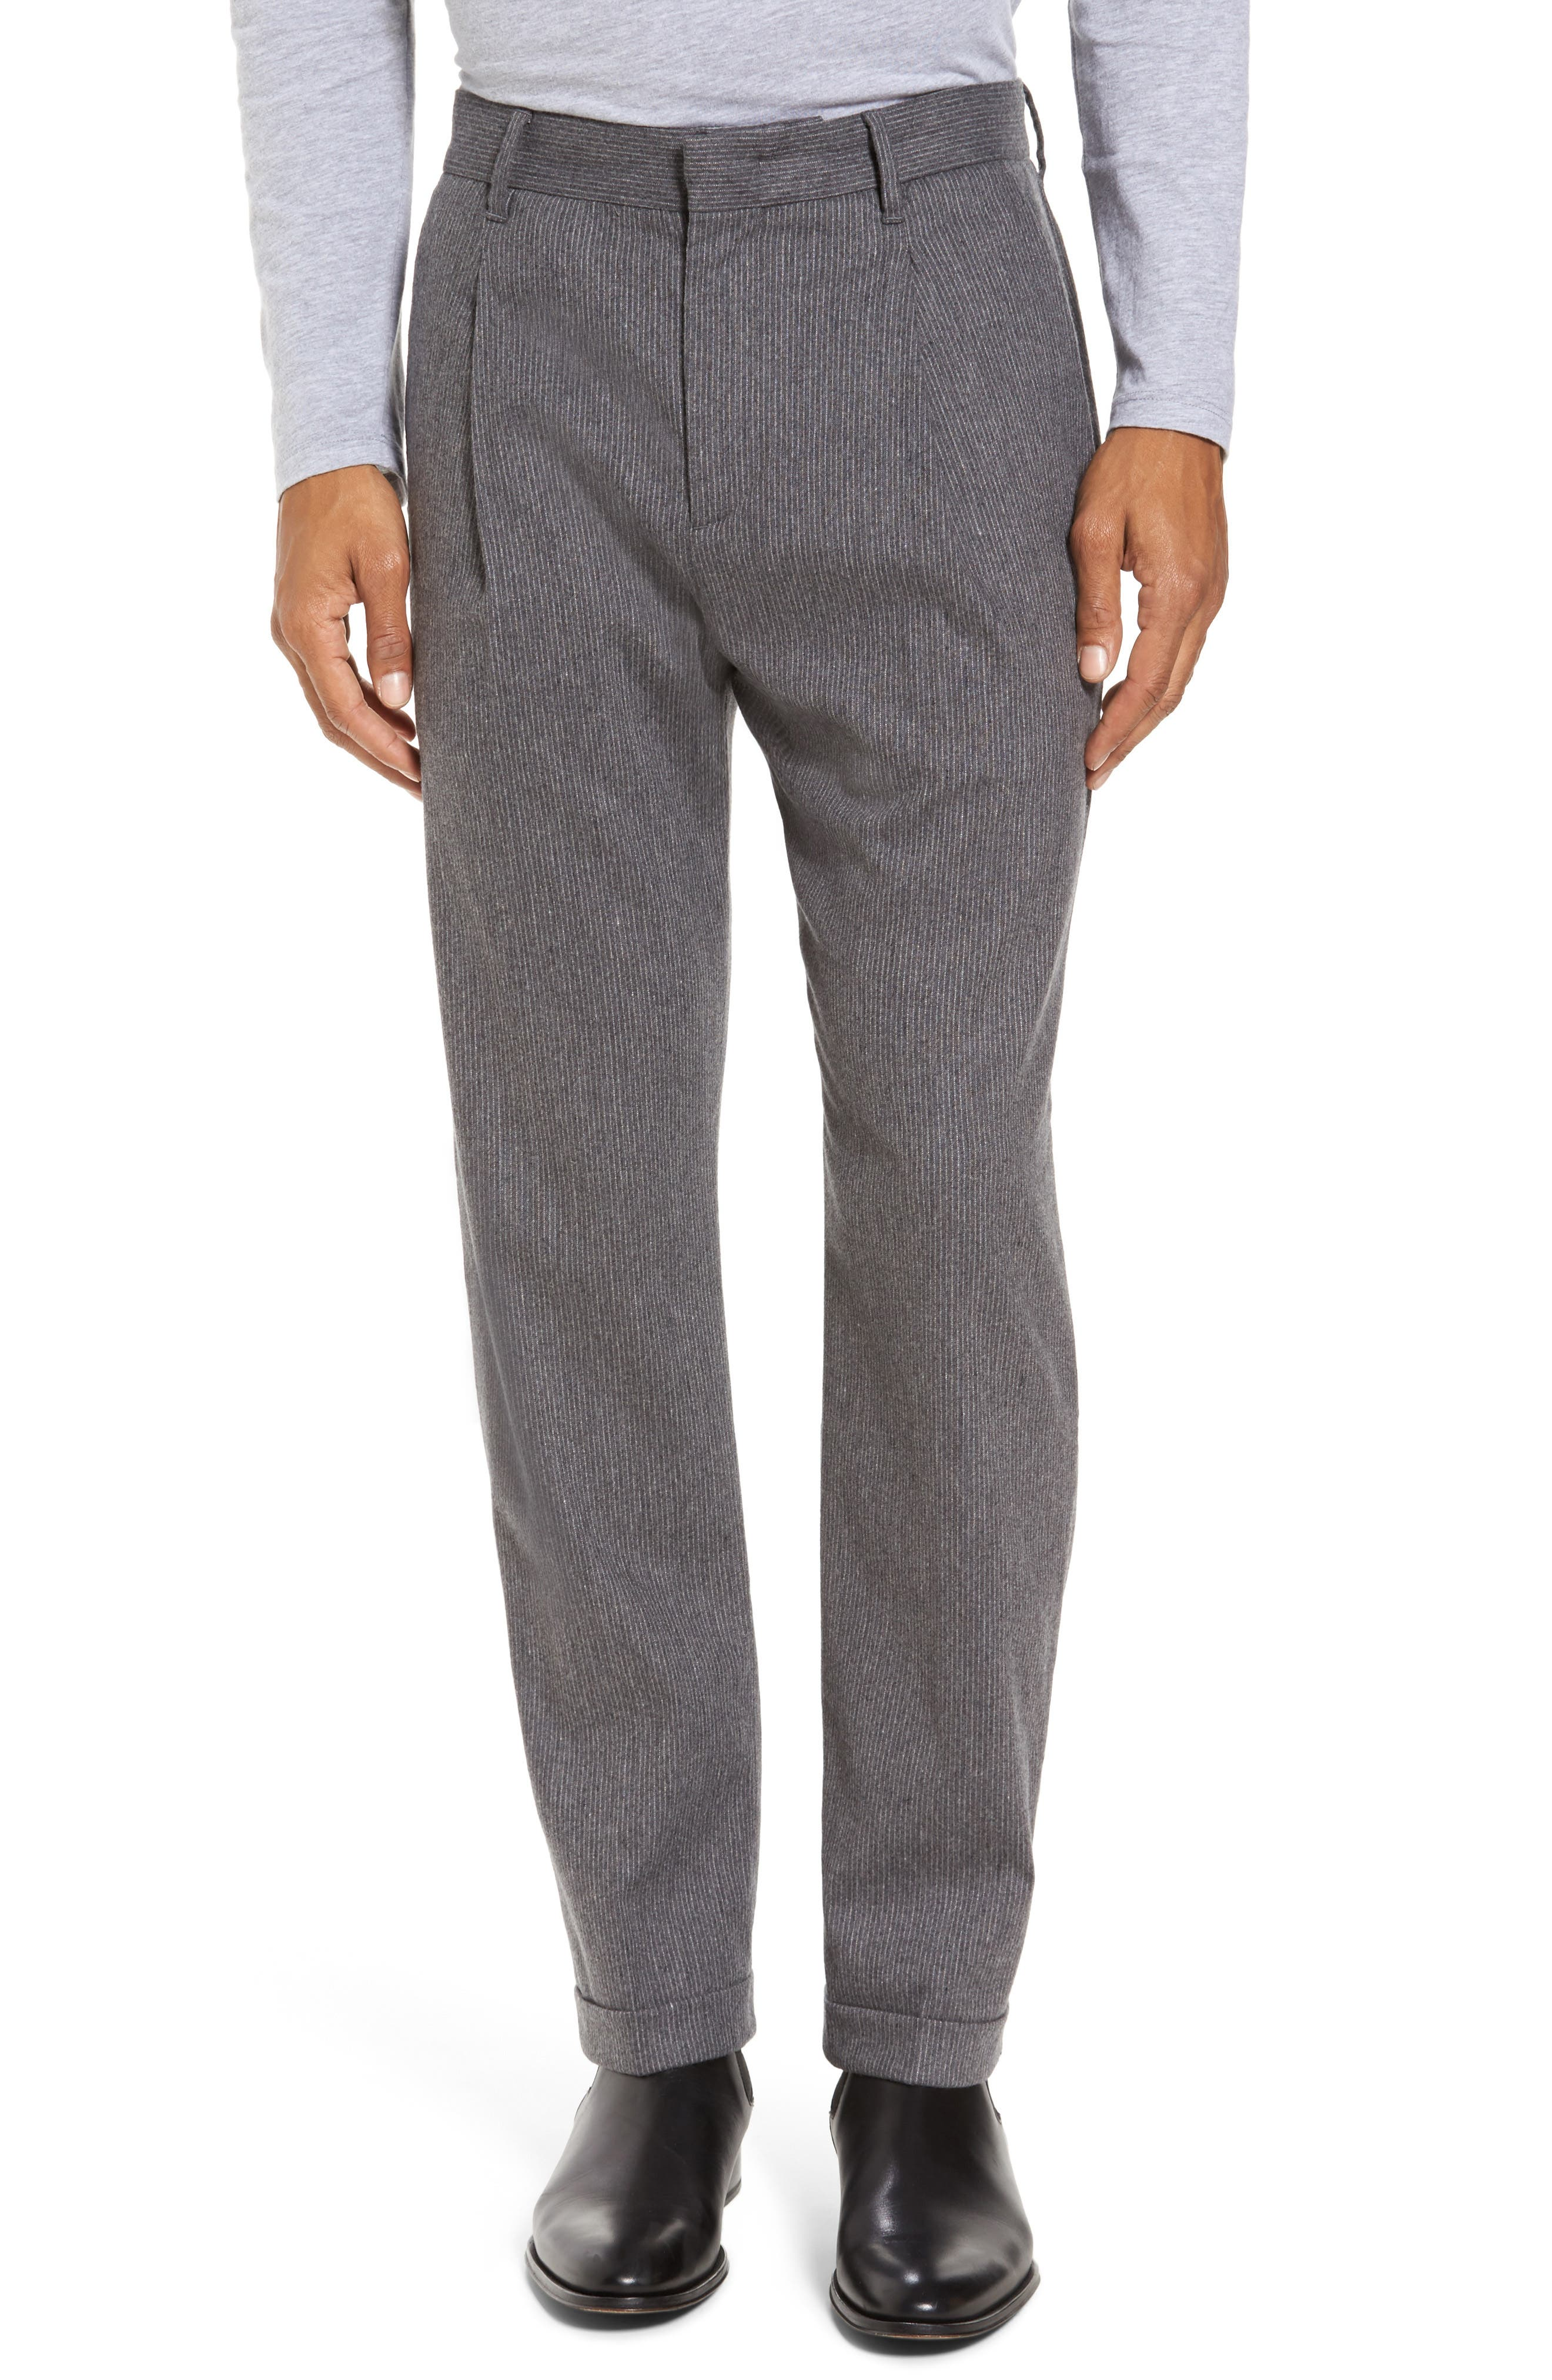 Rushmore Pinstripe Stretch Wool Blend Trousers,                             Main thumbnail 1, color,                             020